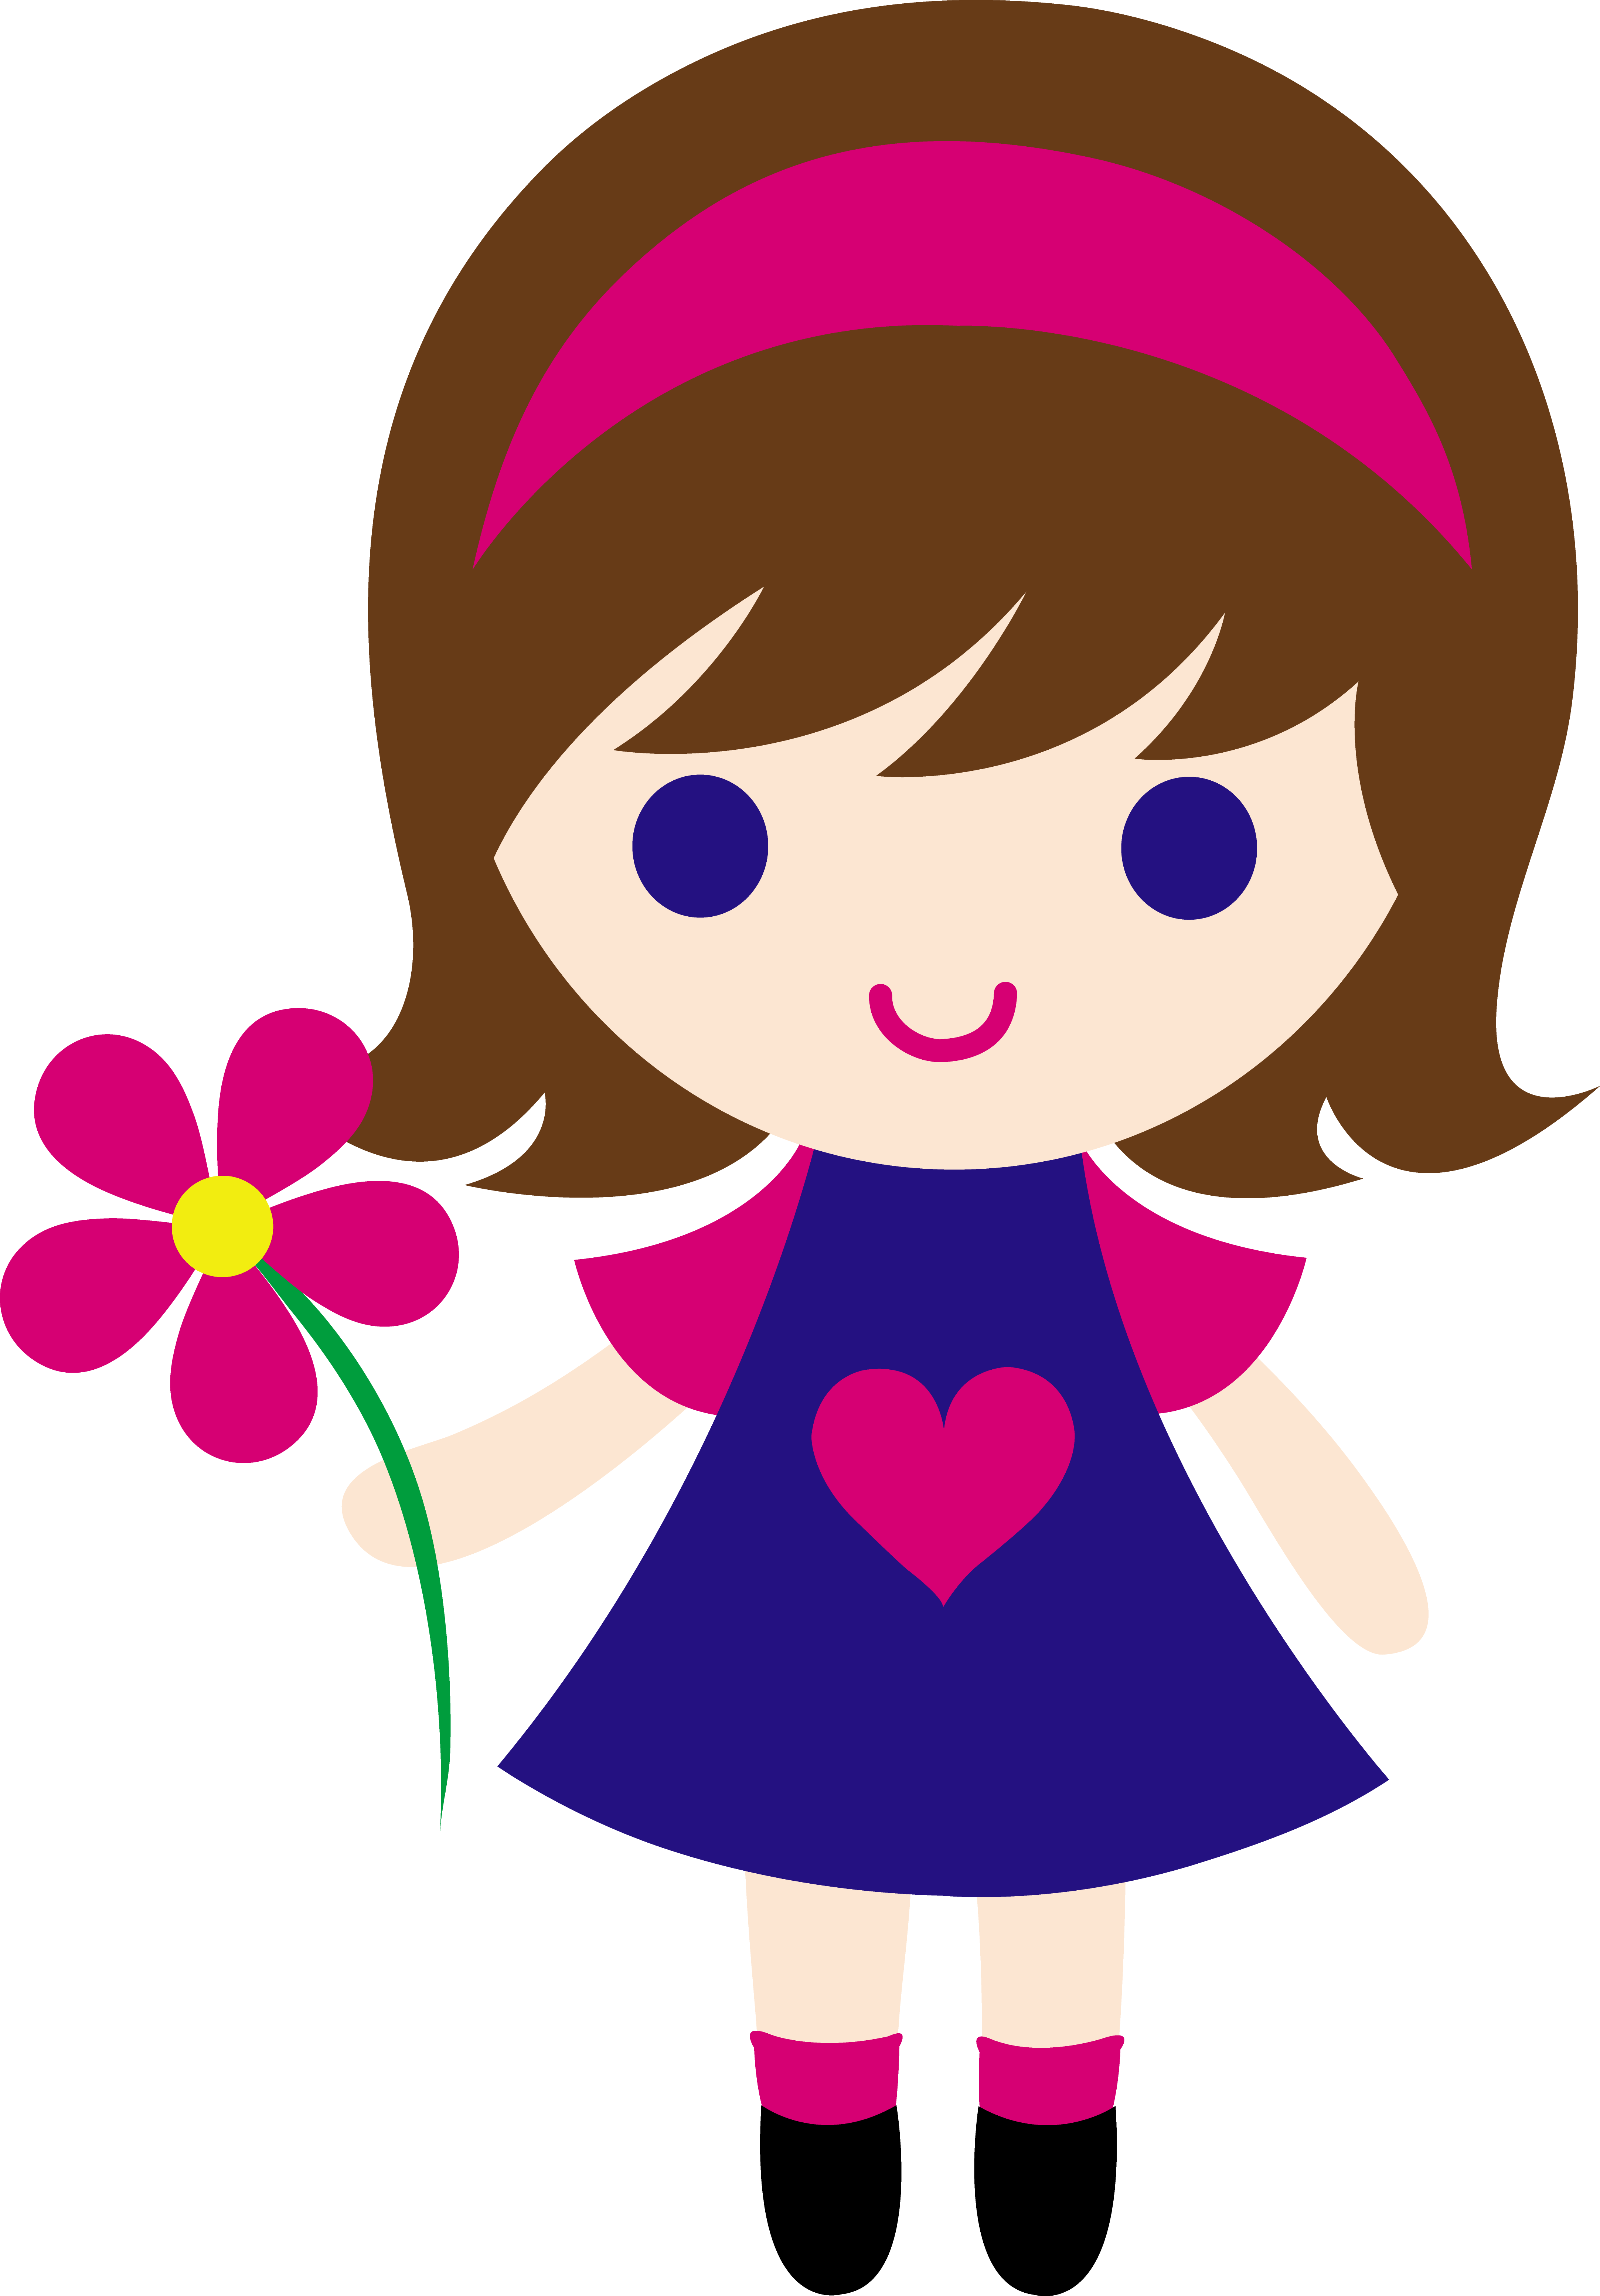 Girls clipart animated. Cartoon girl cliparts zone